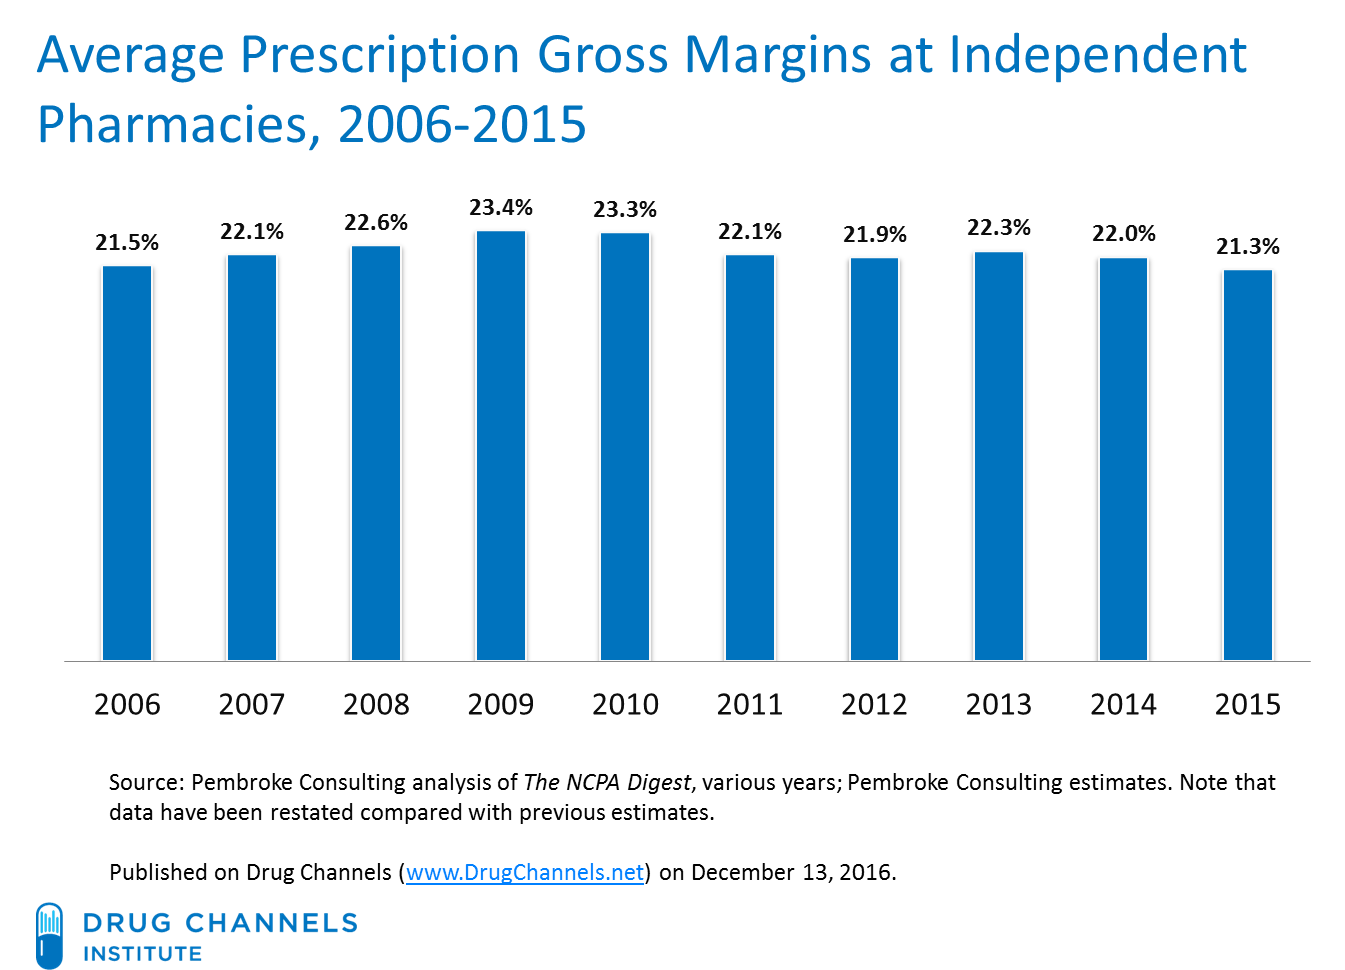 drug channels: new data show prescription profits under pressure at